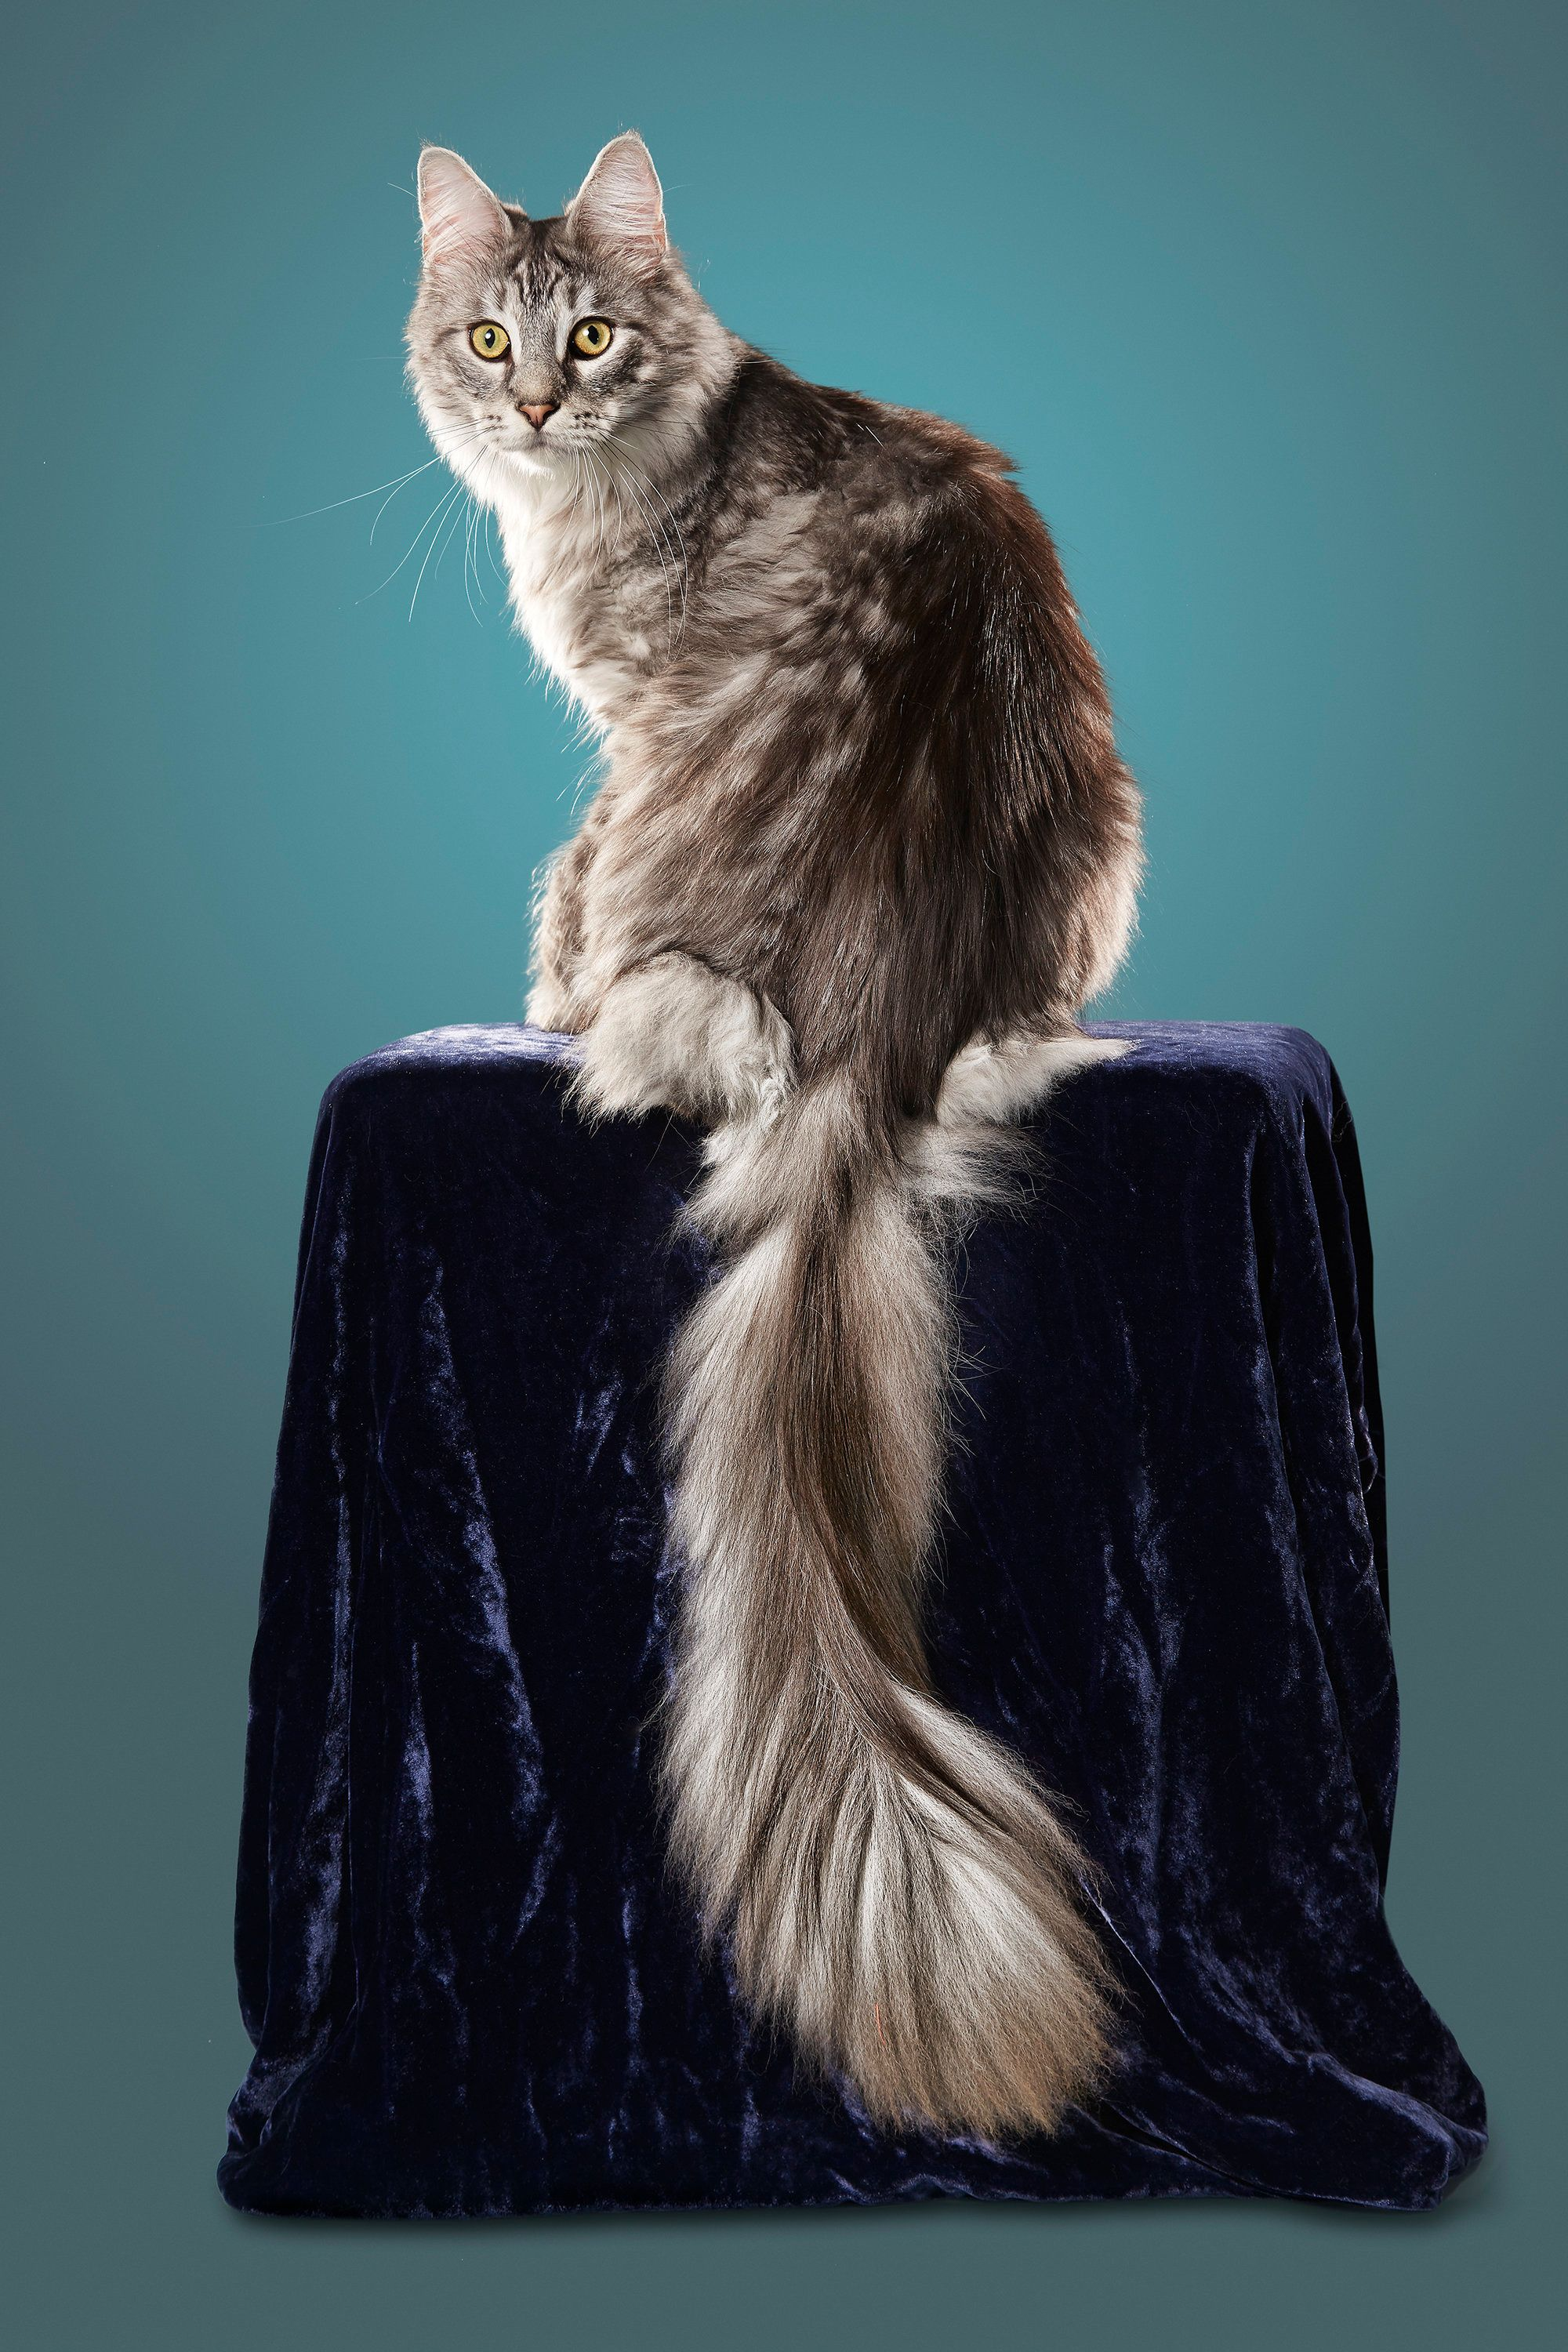 Cat With Longest Tail. Cygnus, A Maine Coon In Ferndale, Michigan, Has A  Tail Measuring 17.58 Inches. Kevin Scott Ramos/Guinness World Records